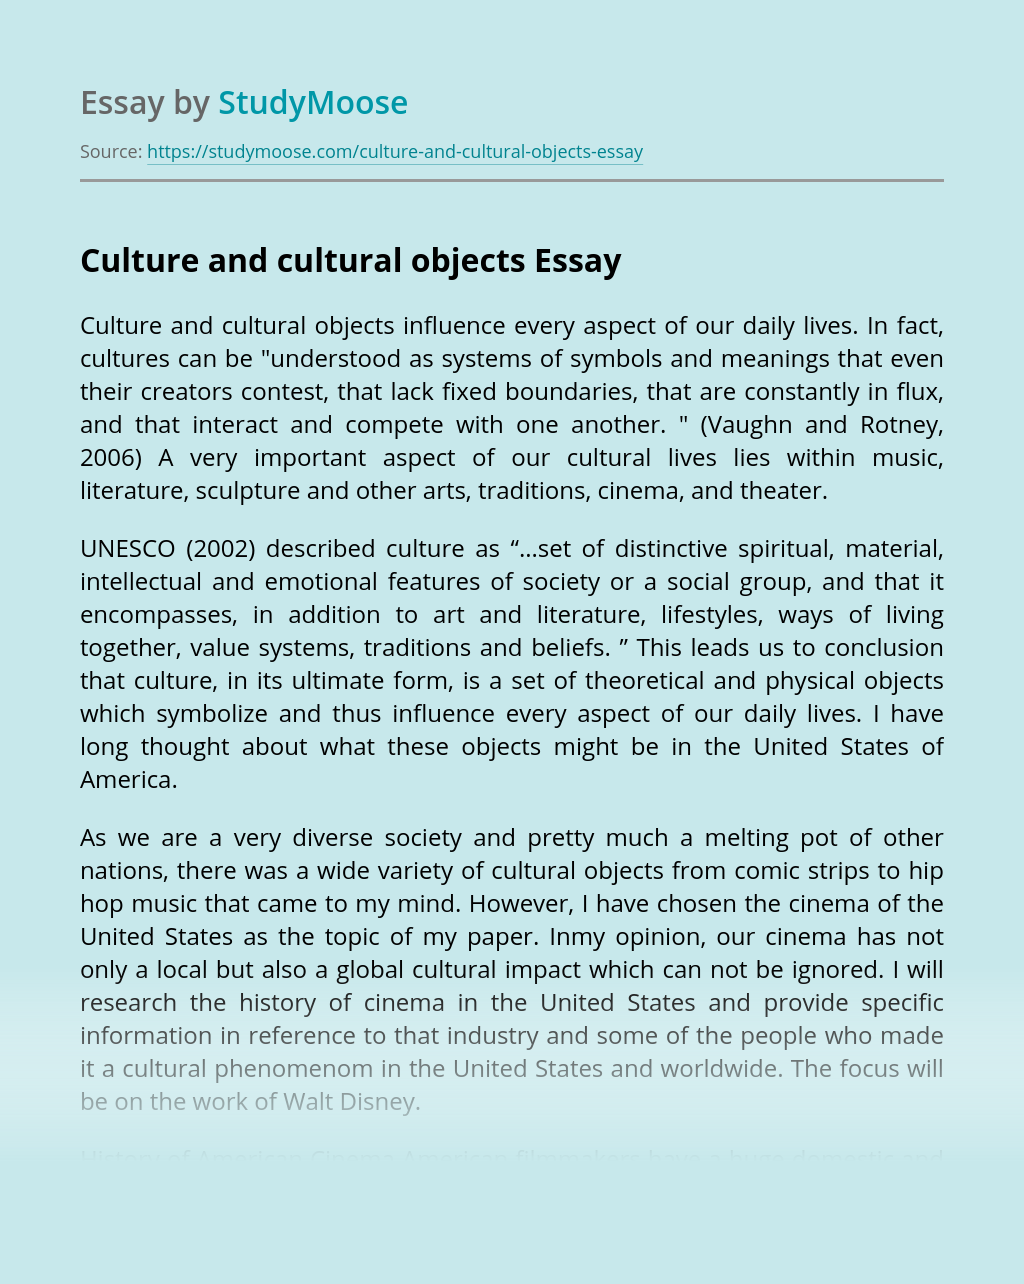 Culture and cultural objects